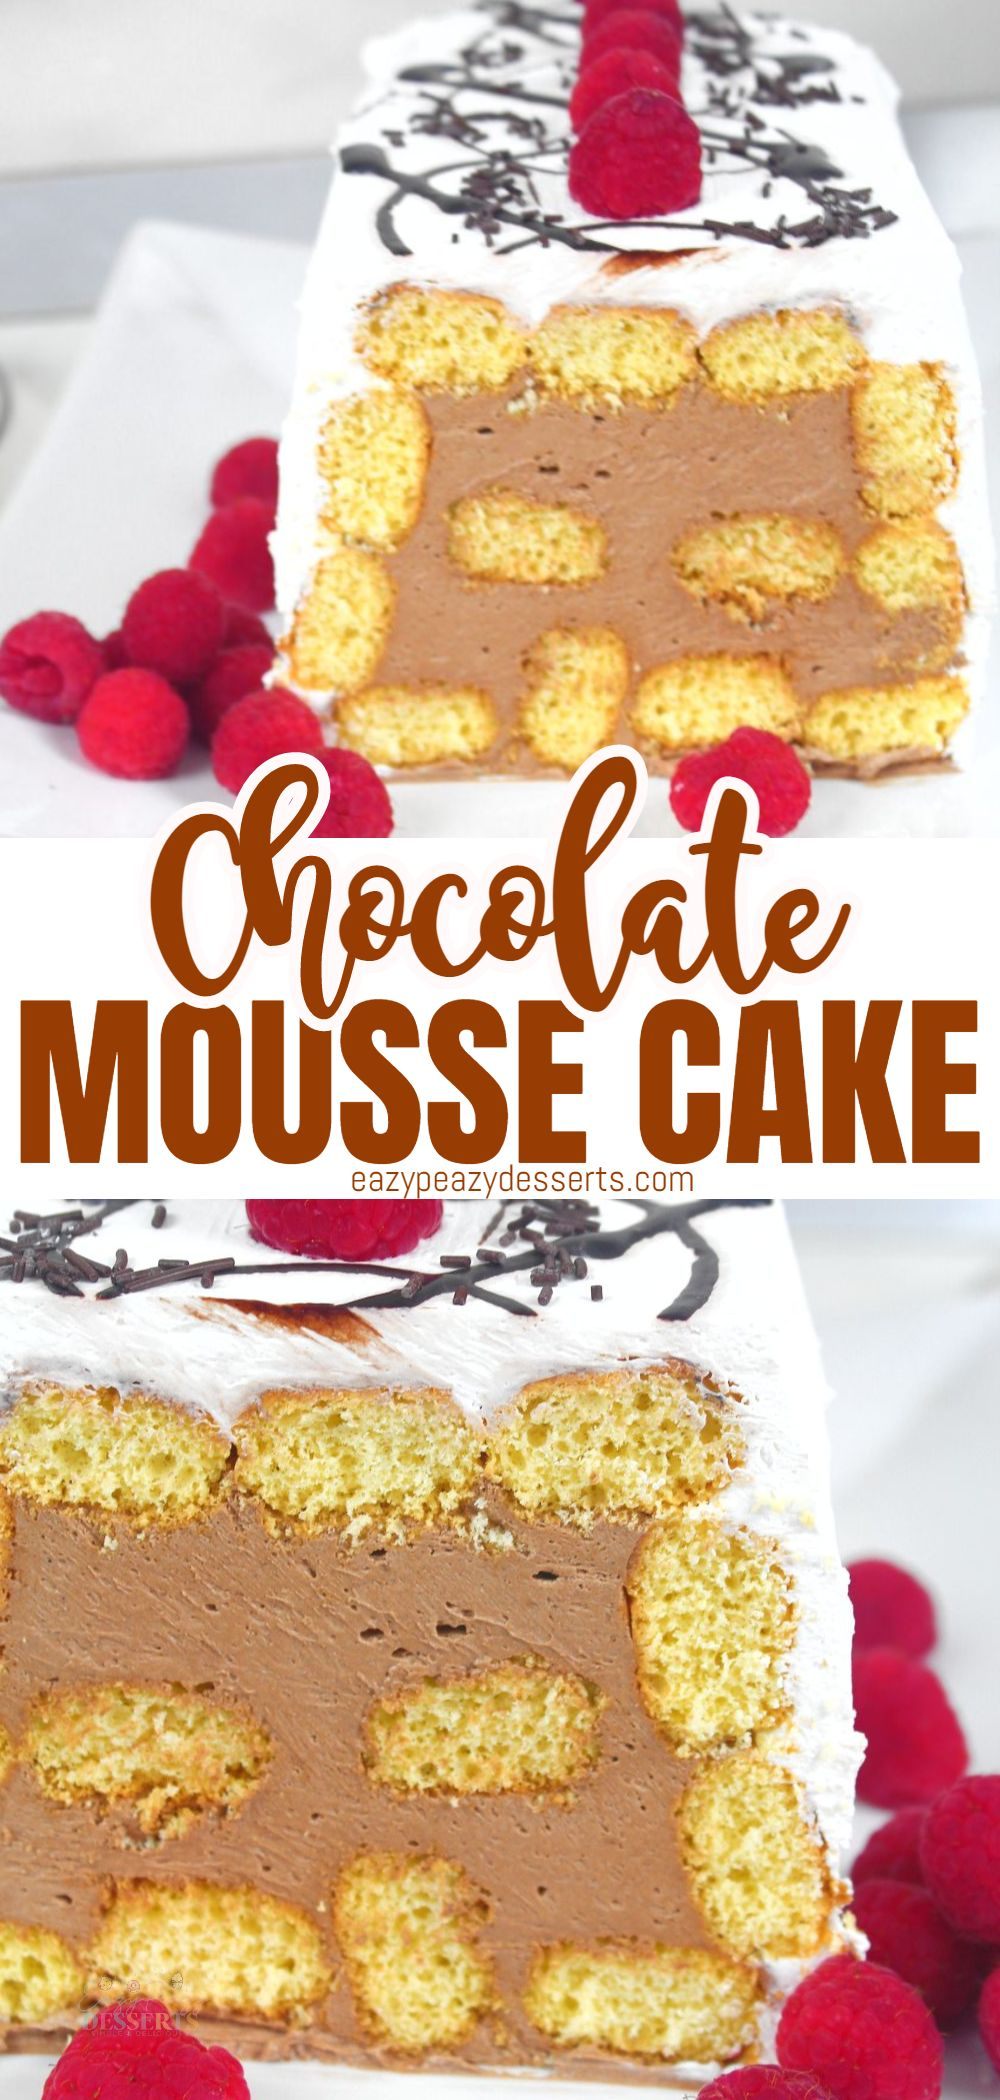 Looking for a fast, easy and no-bake dessert? Here it is: a delicious chocolate mousse cake made with ladyfingers. It comes together really fast, and there's absolutely no baking involved! via @eazypeazydesserts